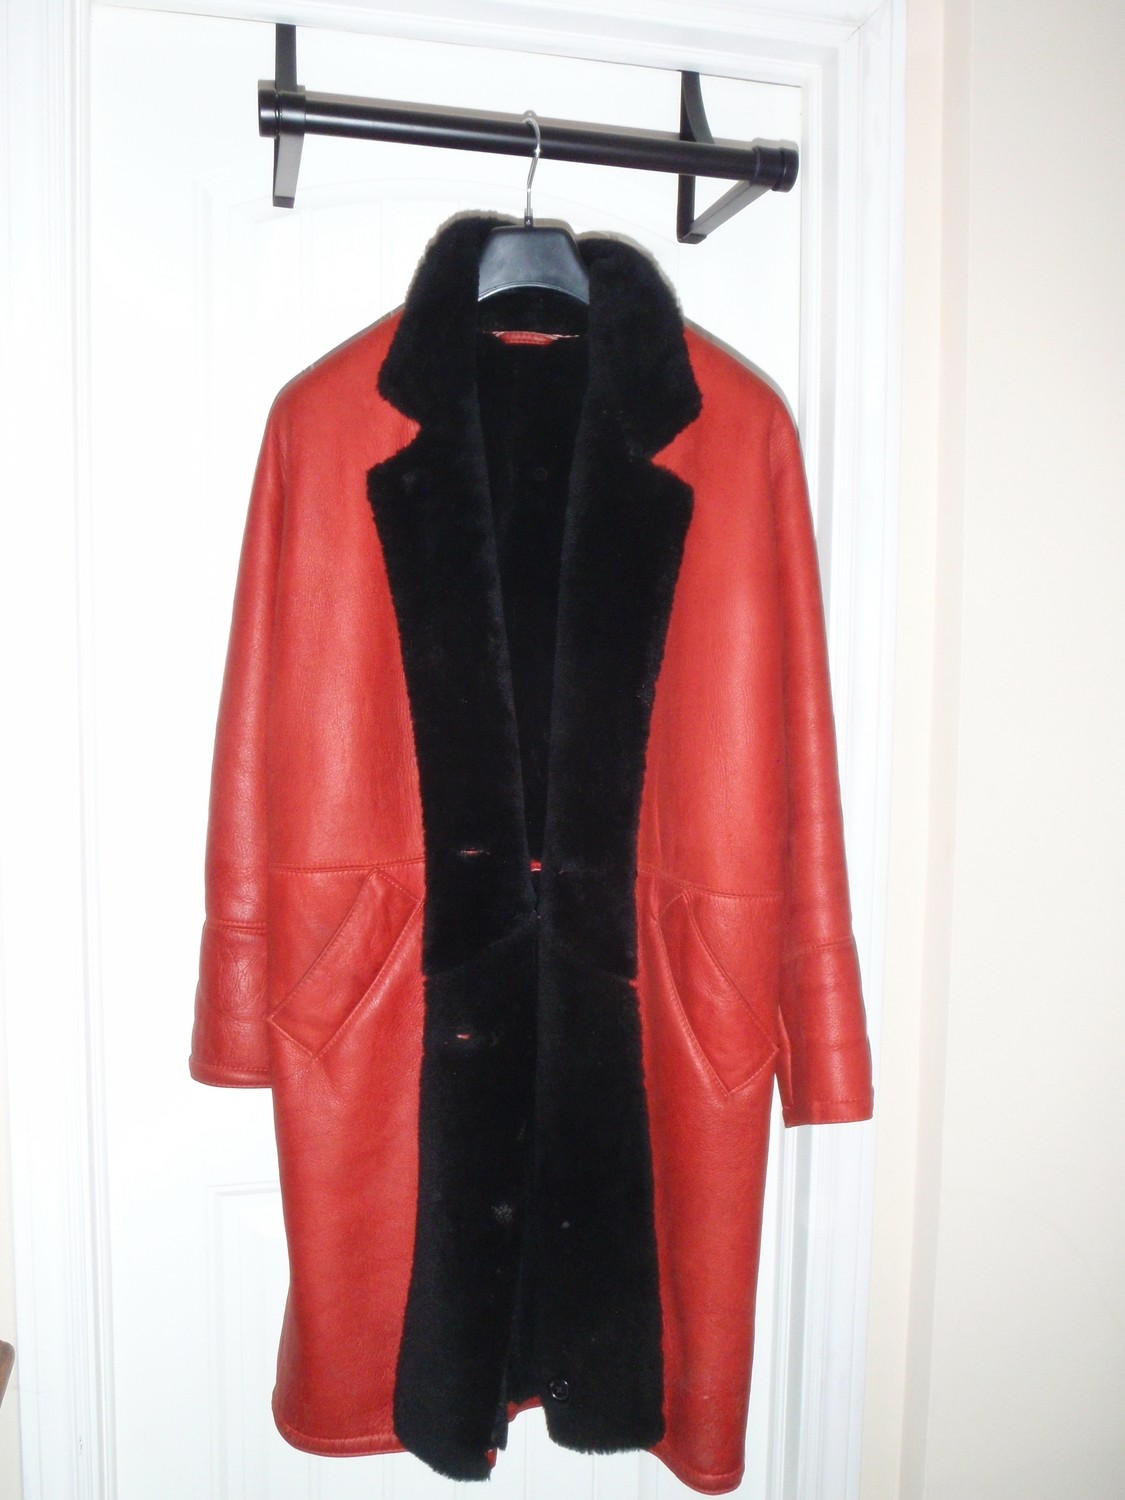 1980's Burberry's Coat, Red Leather and Black Shearling Lamb Fur, Vintage Burberry Jacket